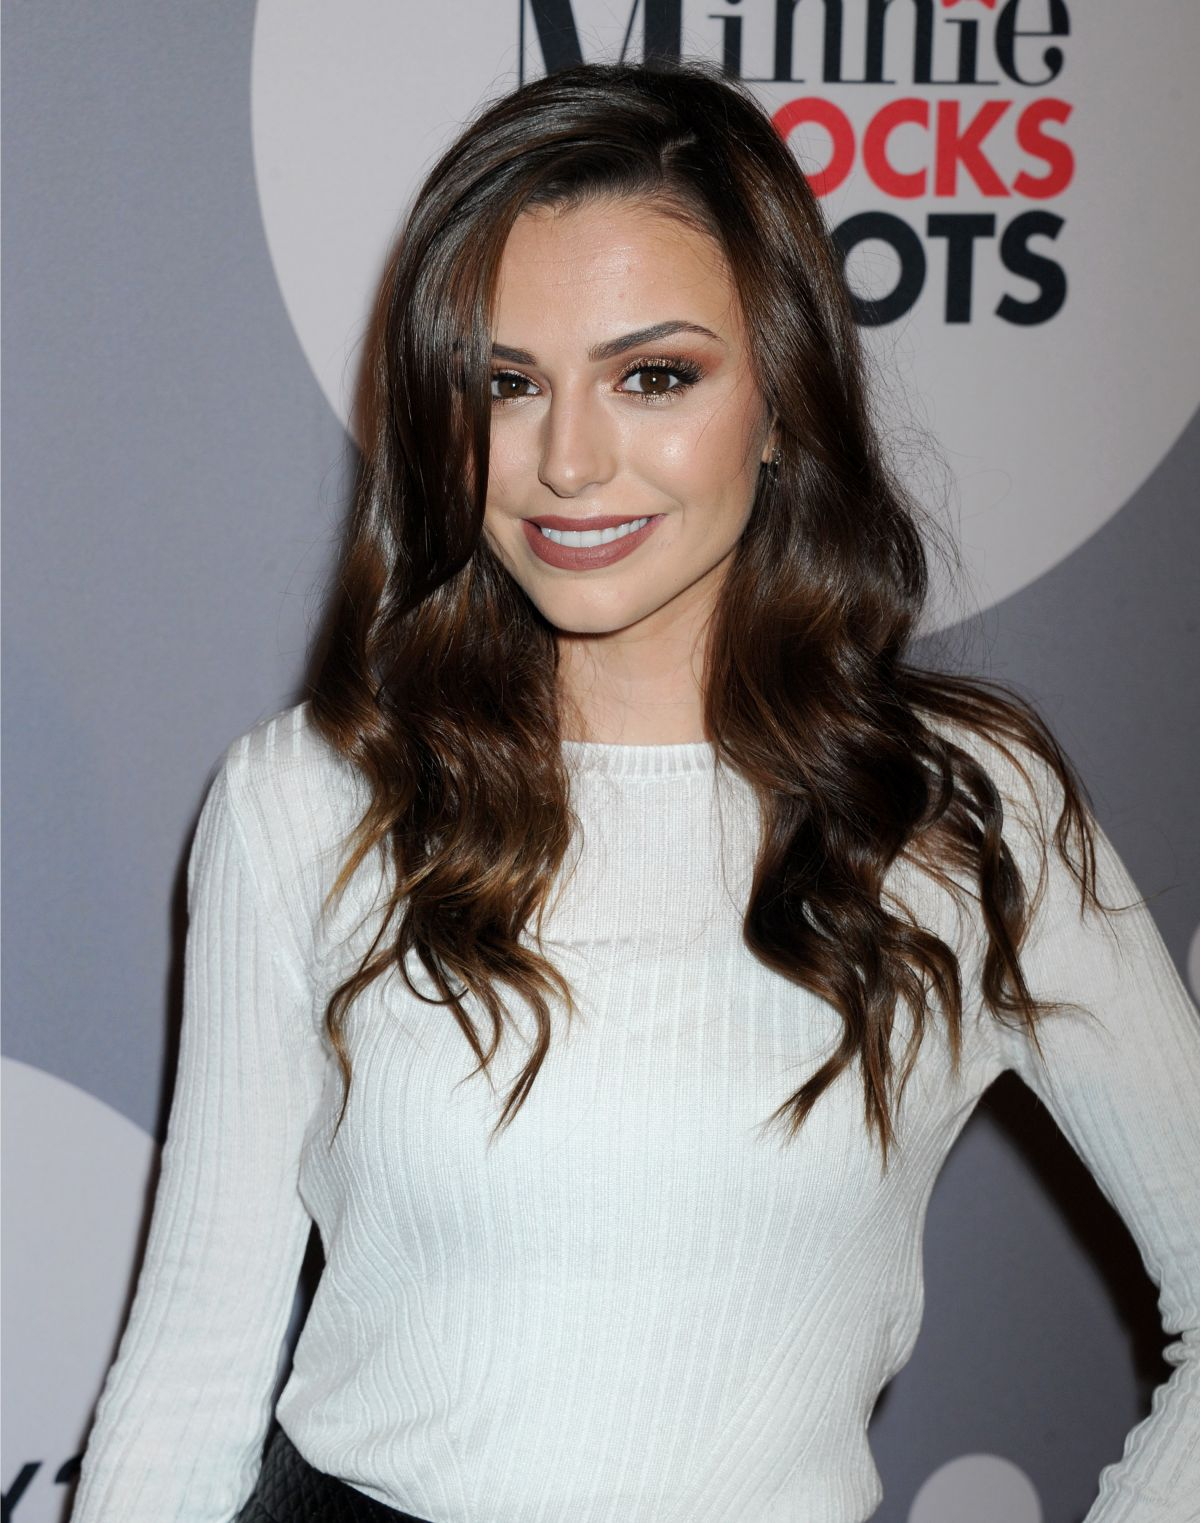 CHER LLOYD at Minnie Mouse Rocks the Dots Art and Fashion Exhibit in Los Angeles 01/22/2016